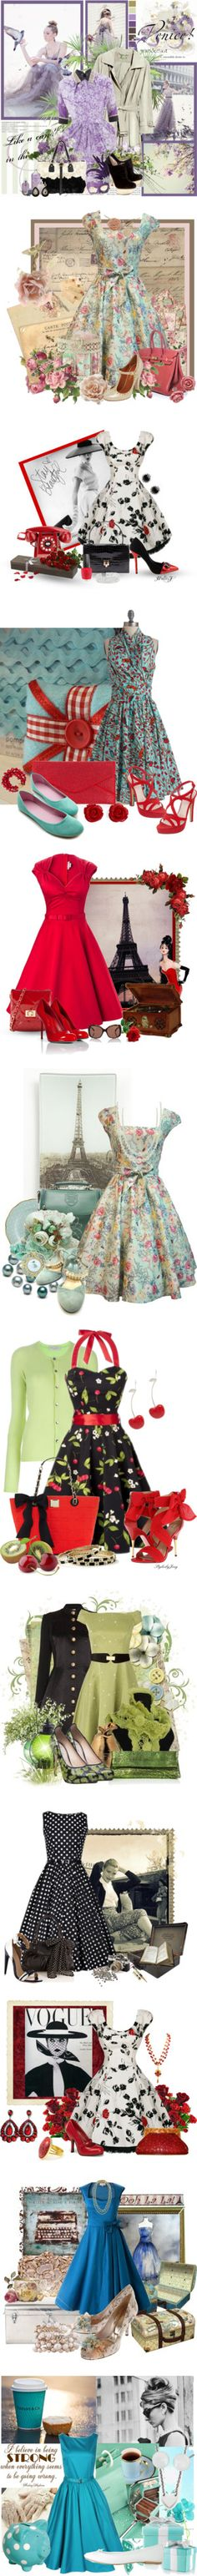 """""""swing dress best"""" by countrycousin ❤ liked on Polyvore"""